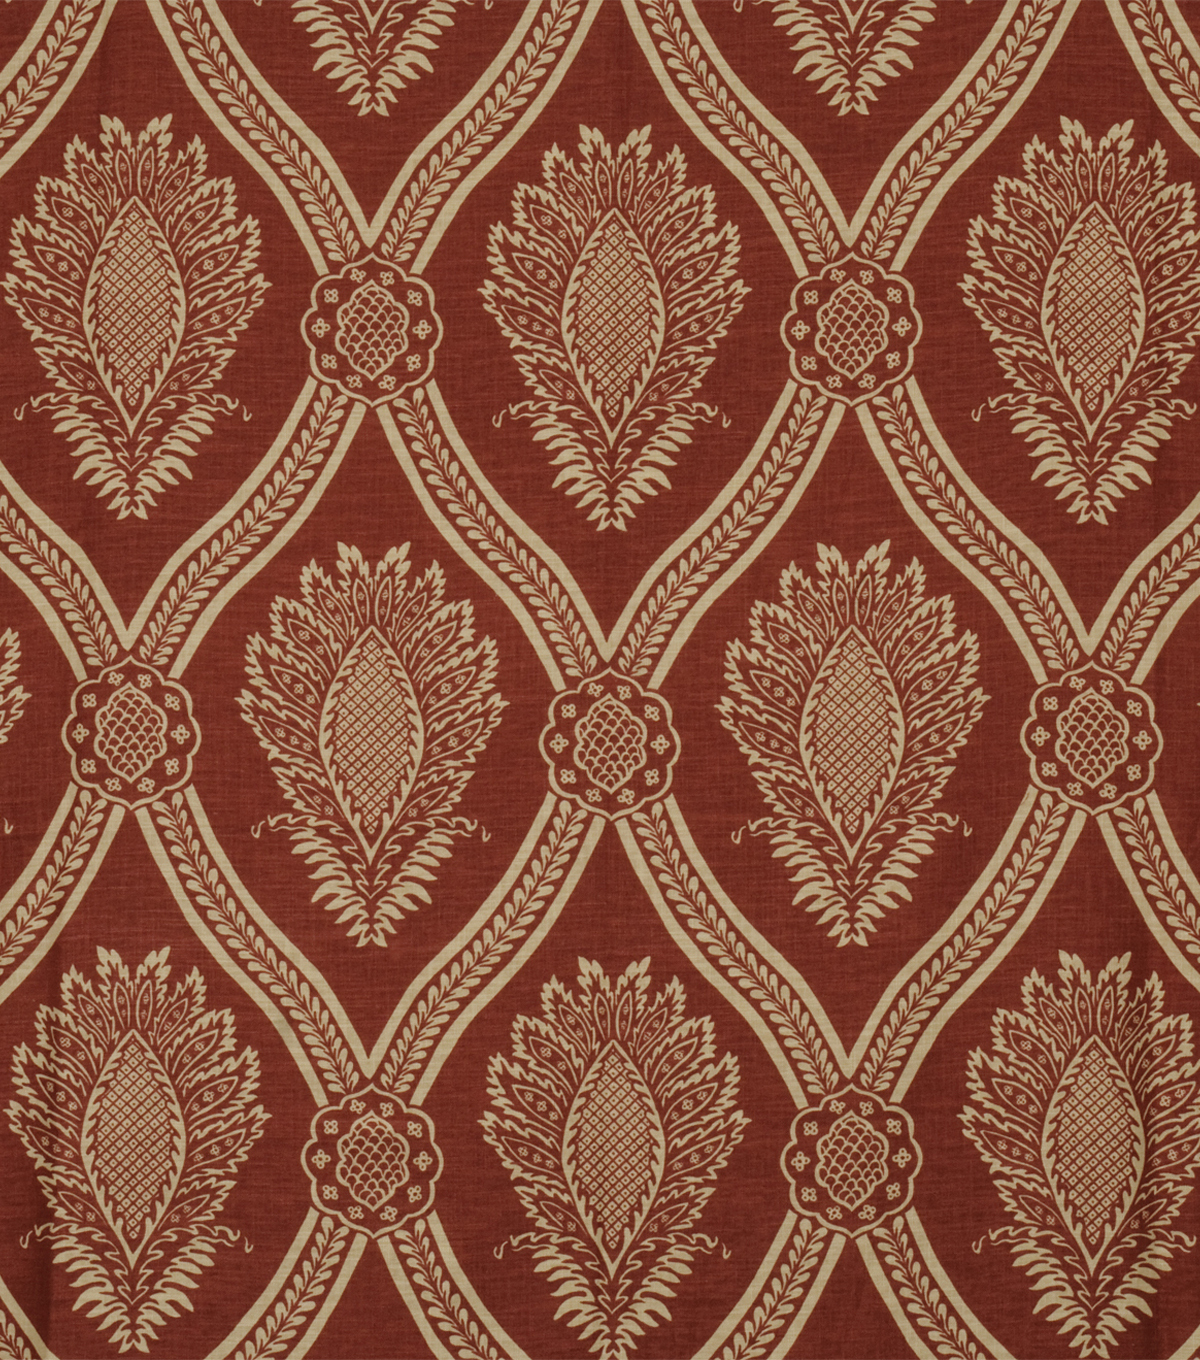 Home Decor 8\u0022x8\u0022 Fabric Swatch-Jaclyn Smith Hollywood-Crimson